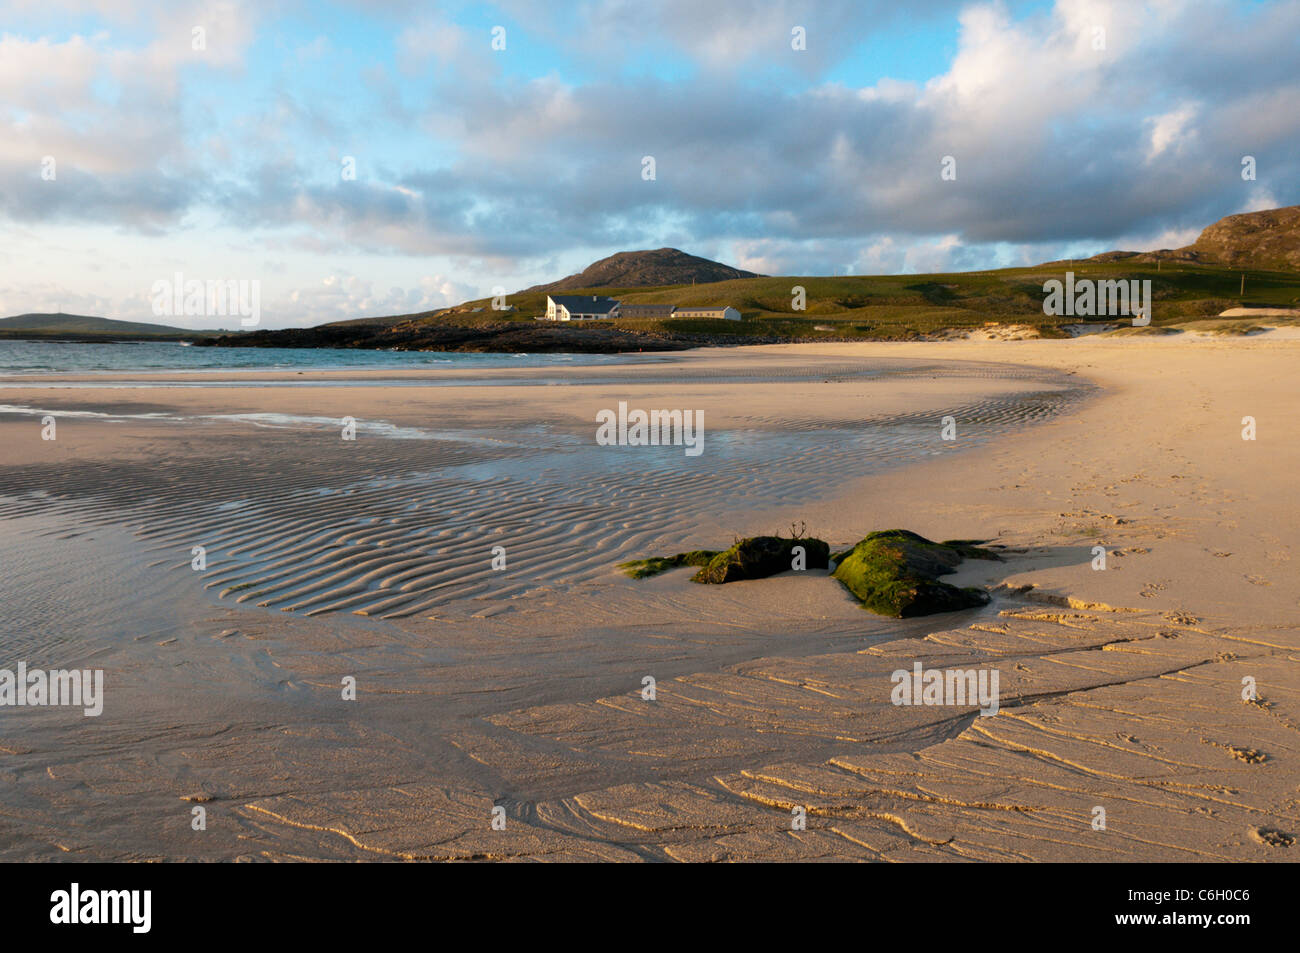 The Barra Beach Hotel on Bàgh Halaman on the island of Barra in the Outer Hebrides. - Stock Image